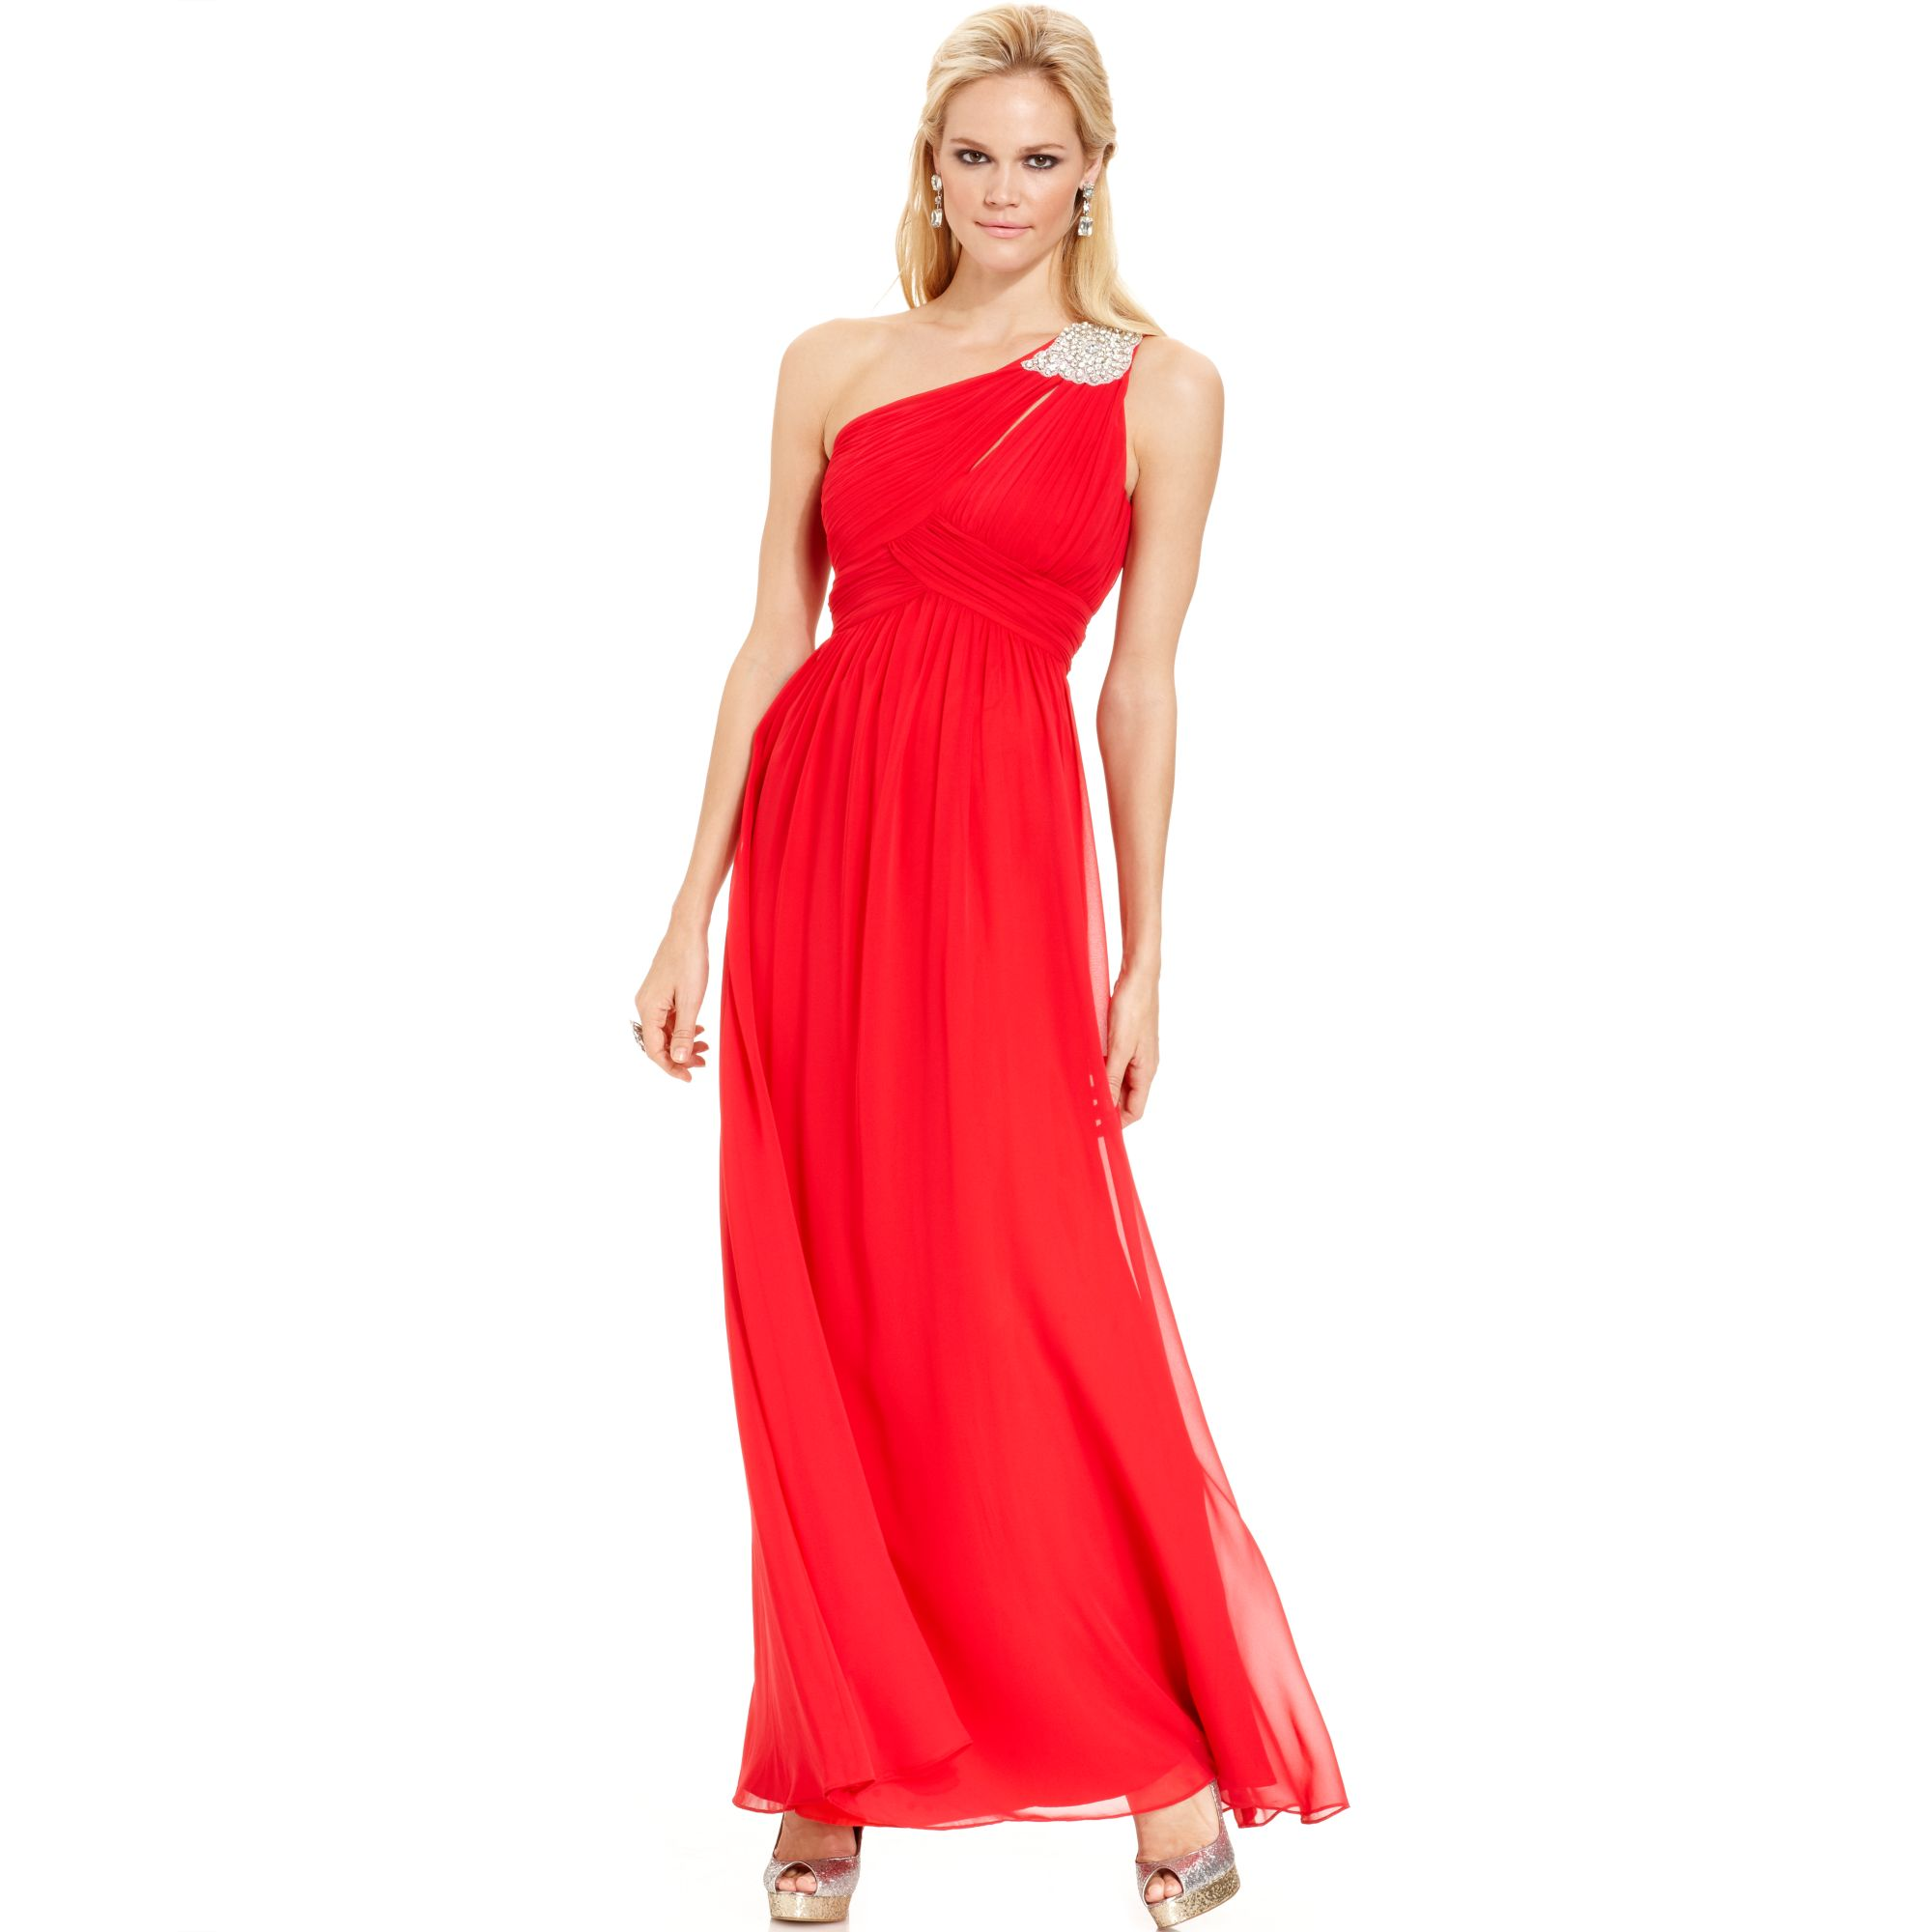 Lyst - Calvin Klein One Shoulder Jewel Brooch Gown in Red